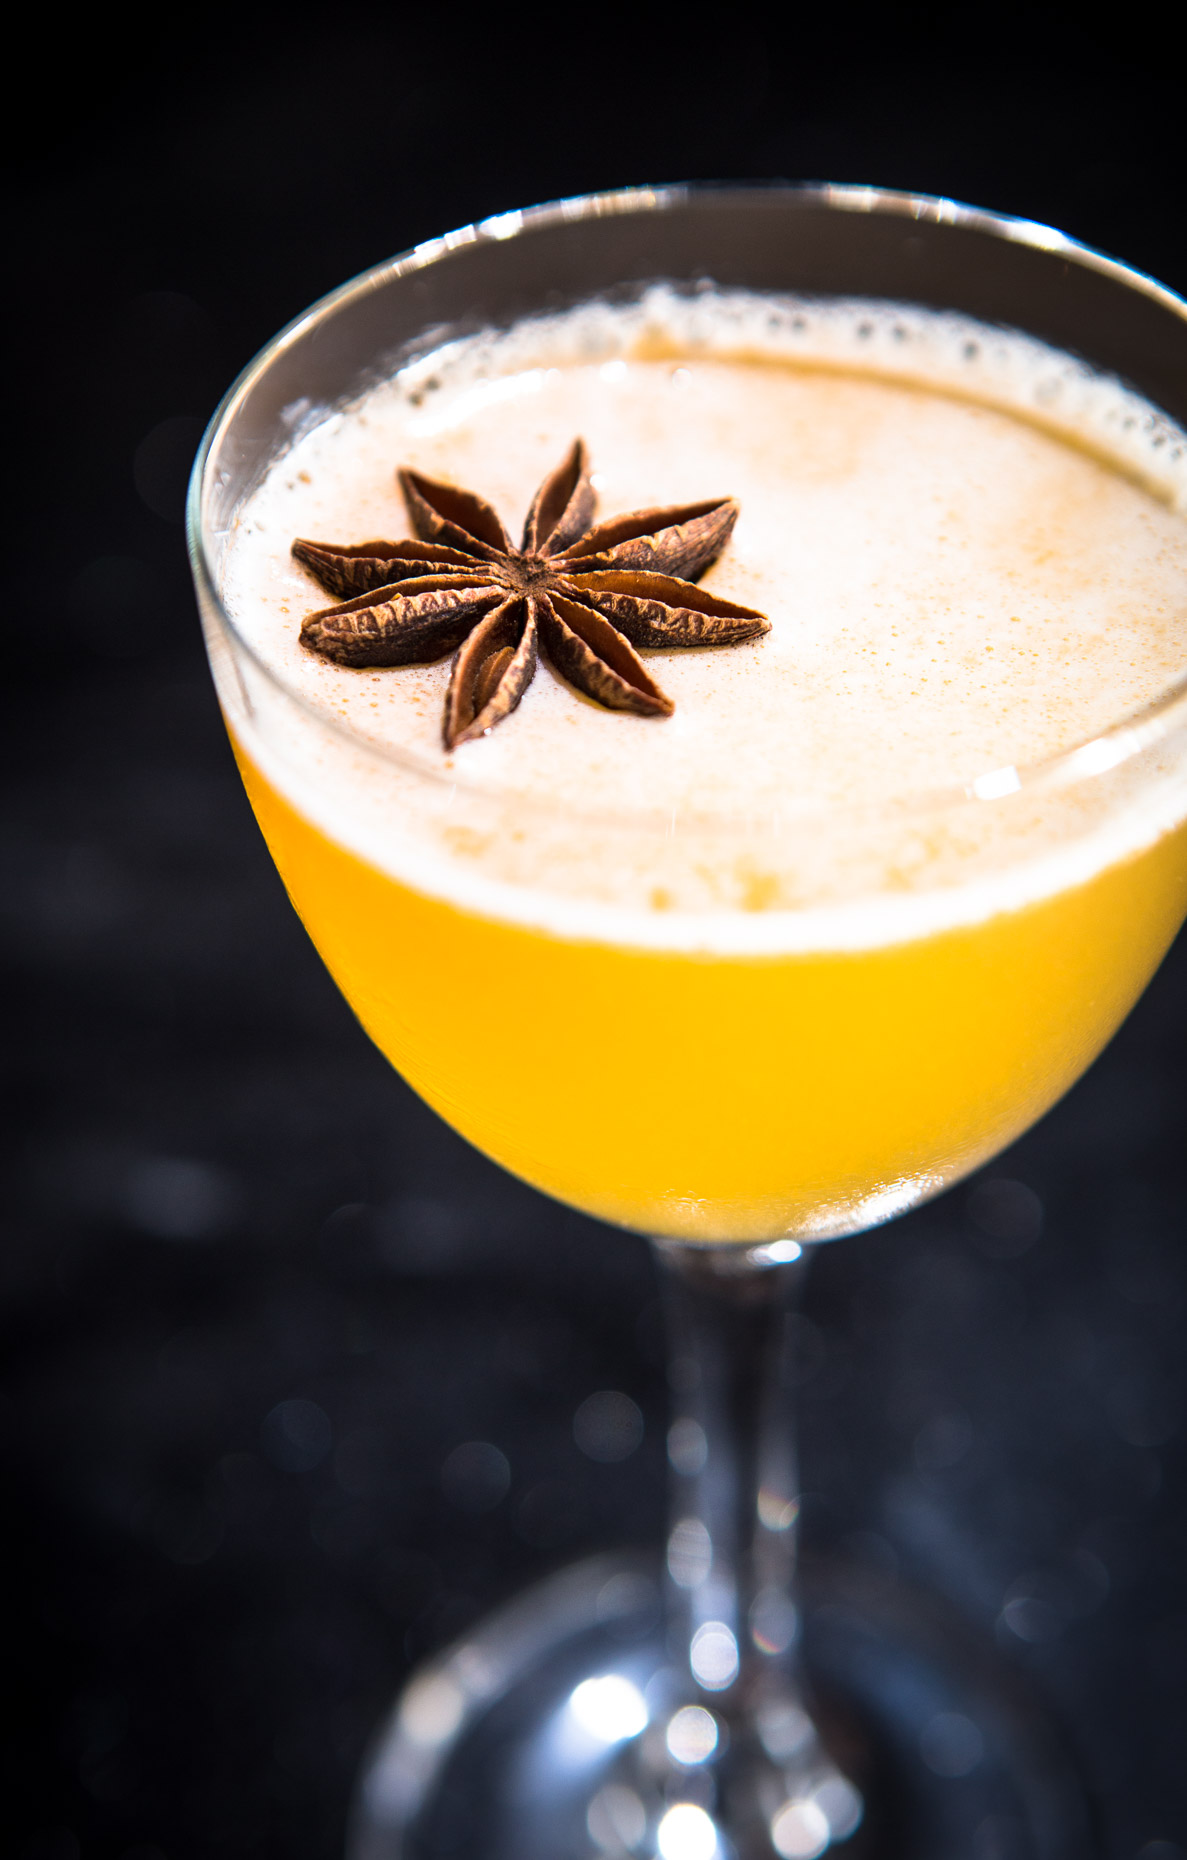 Craft cocktail with star anise